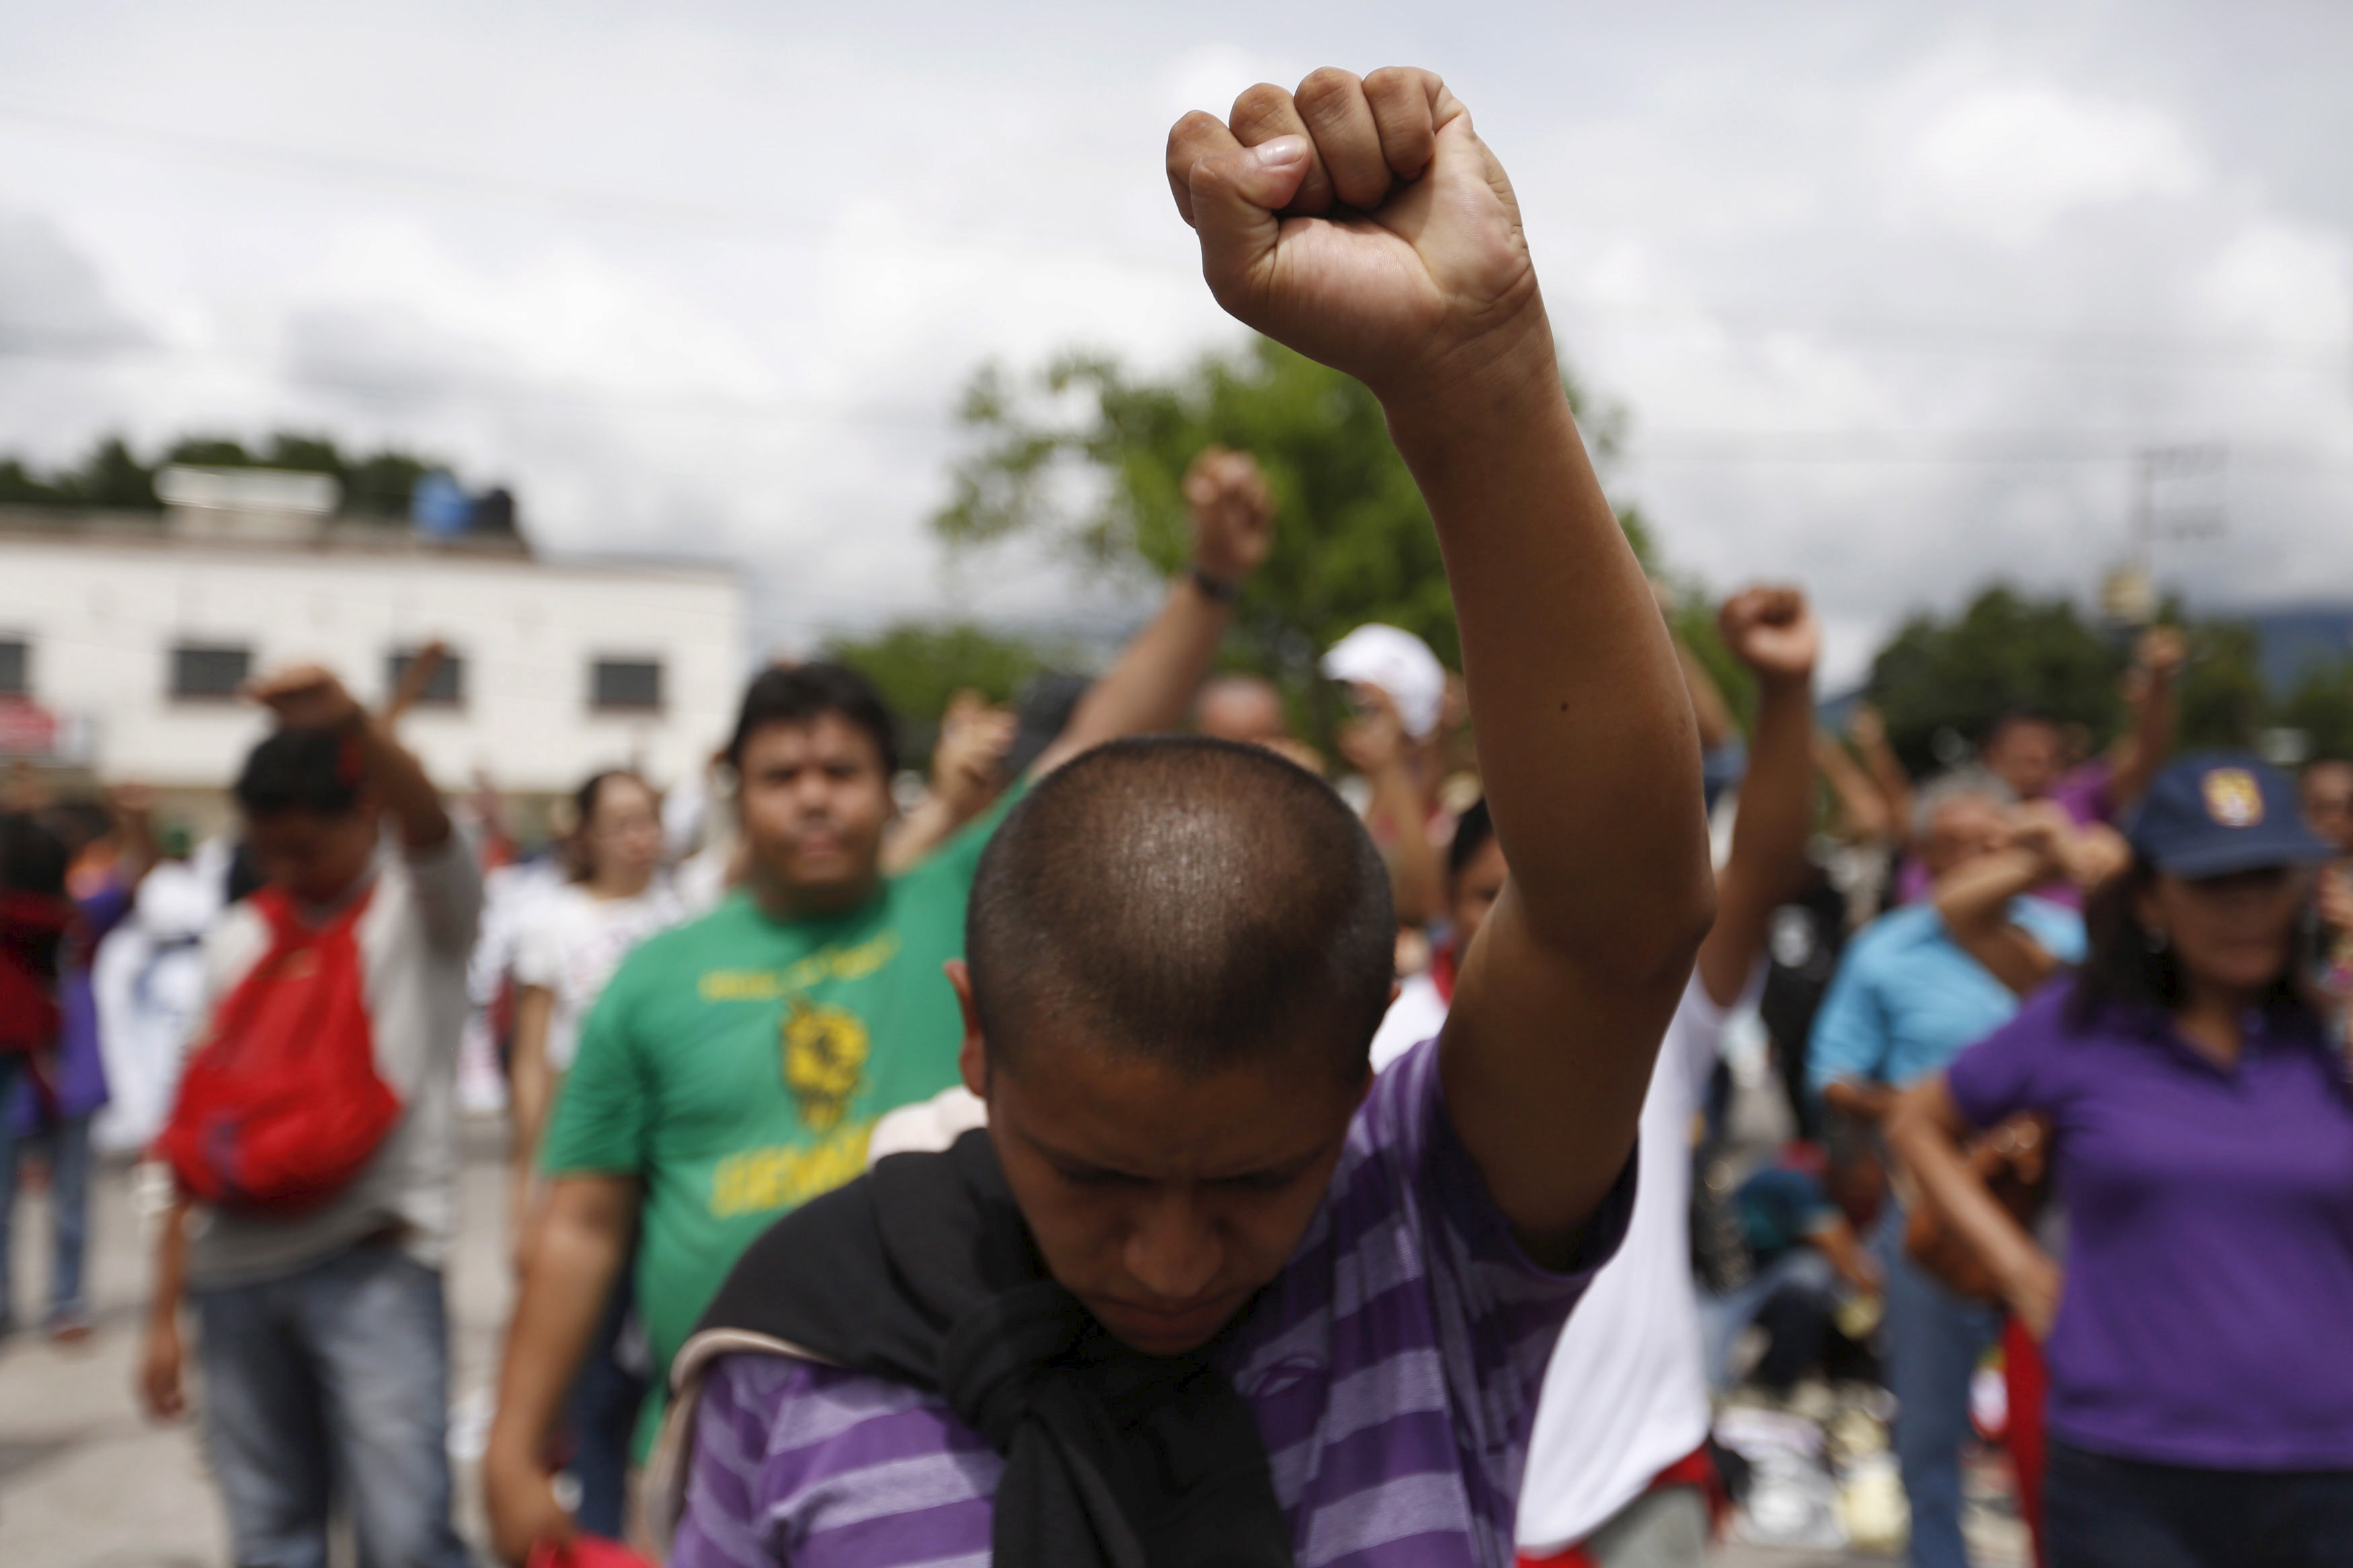 A man gestures during a march organized by parents and relatives of the 43 missing students of Ayotzinapa College Raul Isidro Burgos in Iguala, in the Mexican state of Guerrero, September 27, 2015